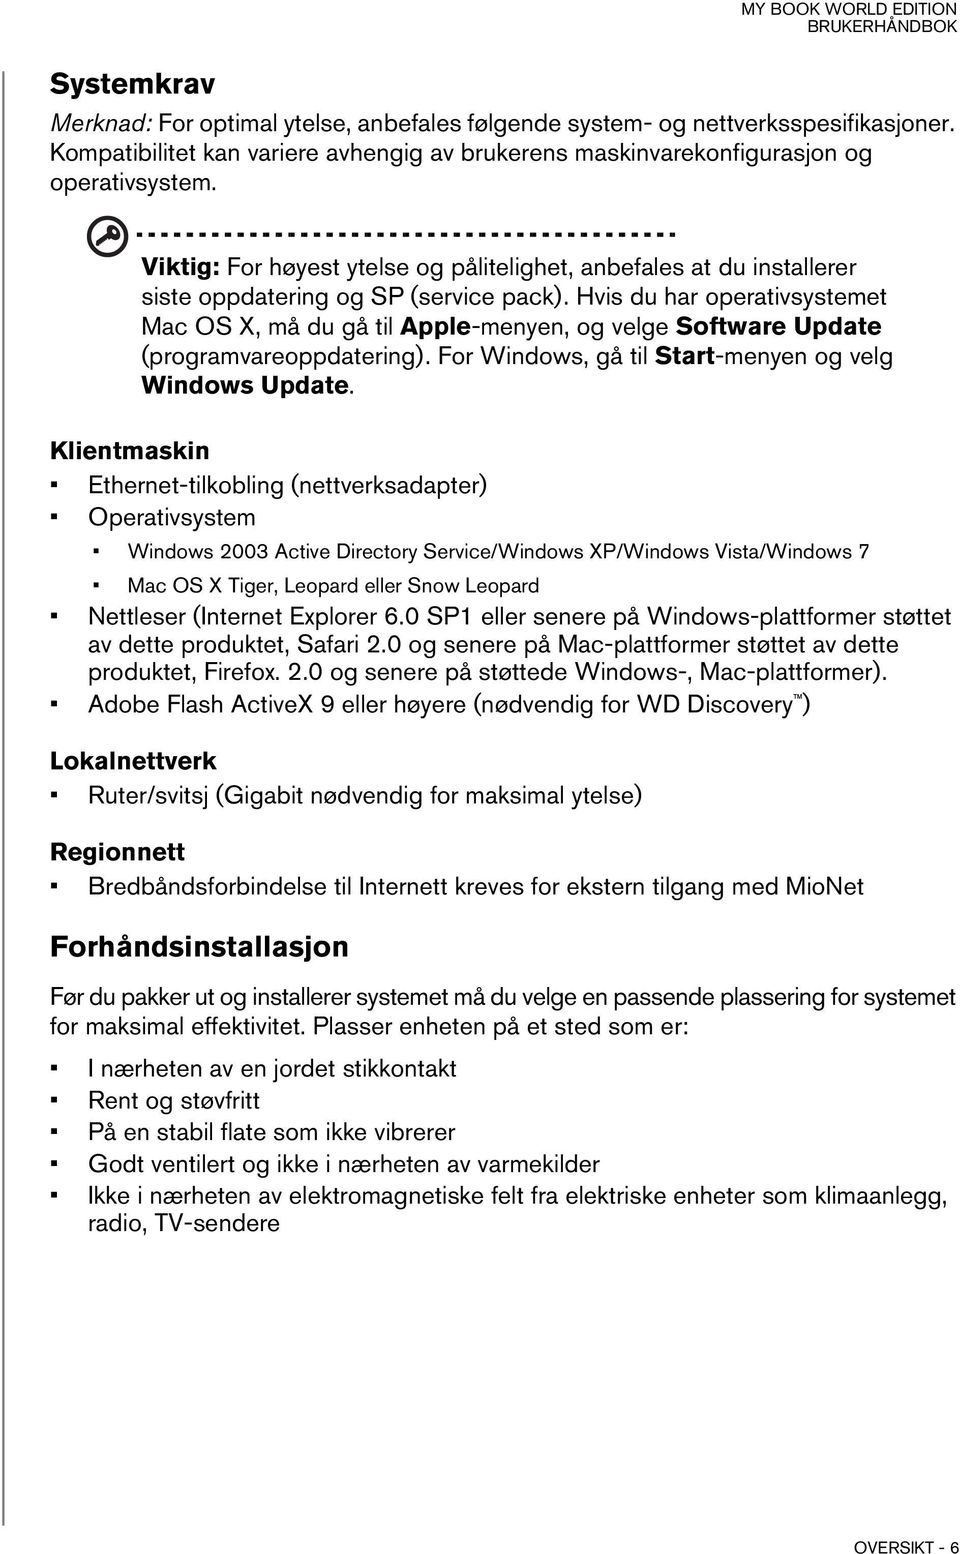 Hvis du har operativsystemet Mac OS X, må du gå til Apple-menyen, og velge Software Update (programvareoppdatering). For Windows, gå til Start-menyen og velg Windows Update.